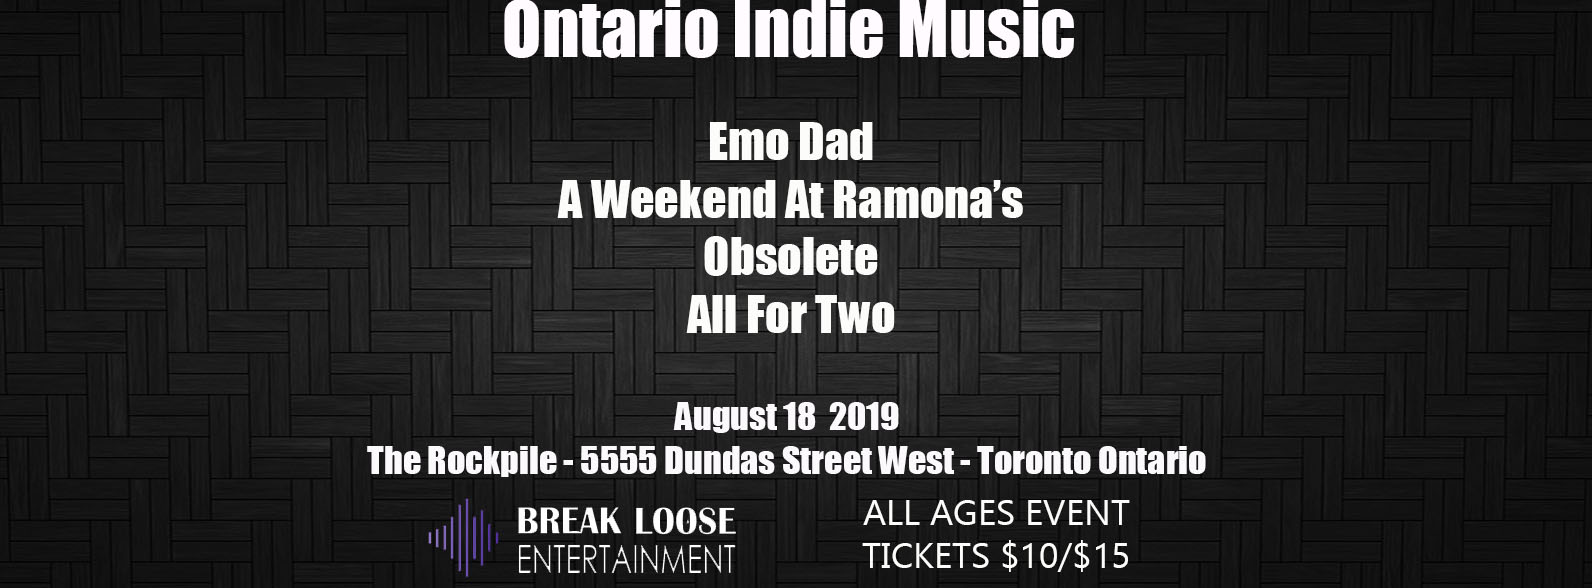 Emo Dad, A Weekend at Ramona's, Obsolete, Tequila Mocking Birds and All For Two